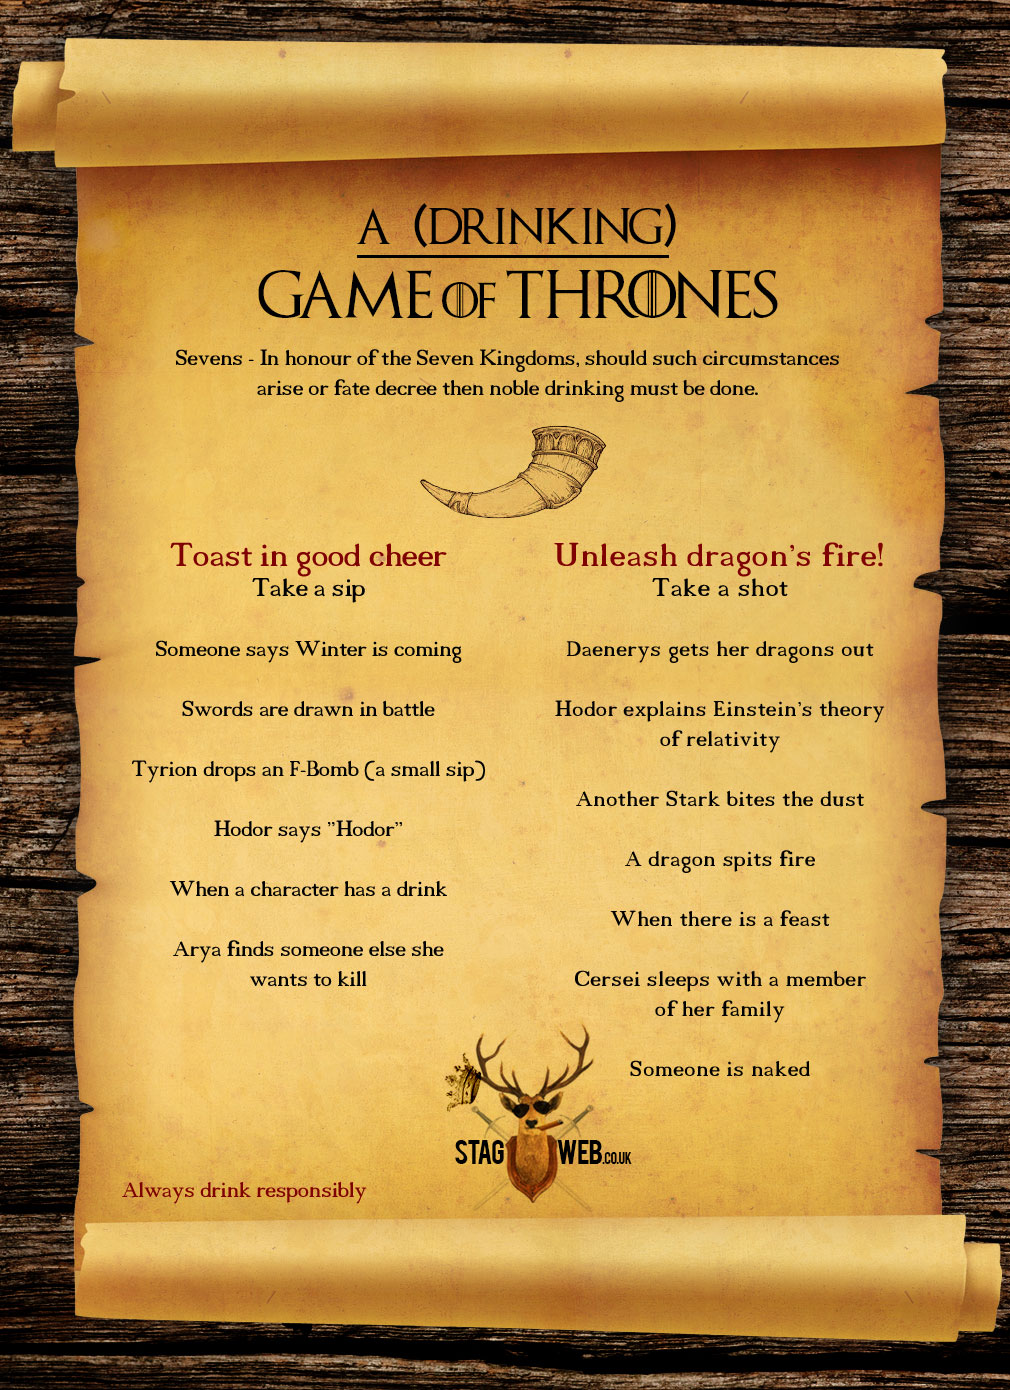 The Drinking Games of Thrones infographic